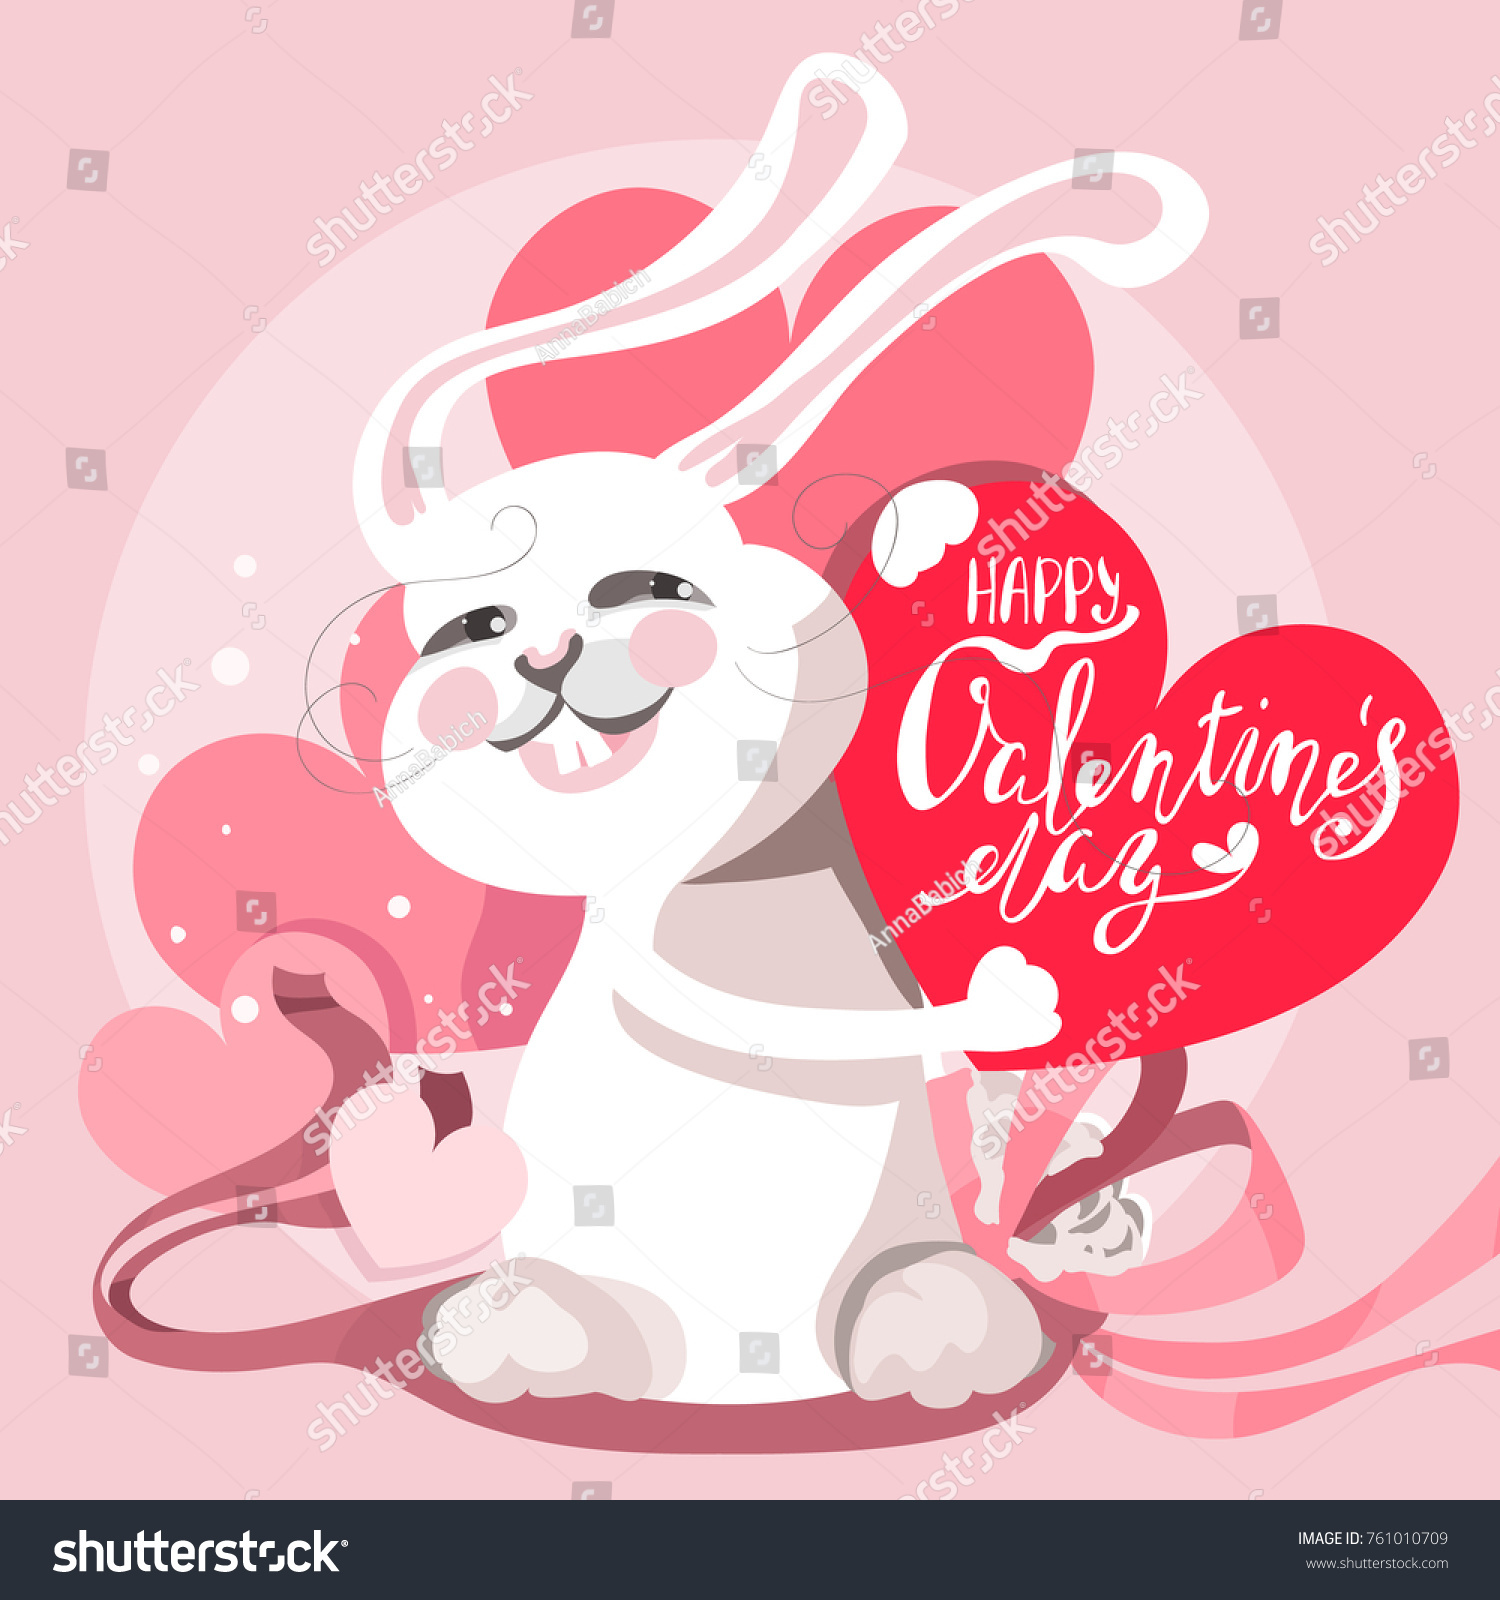 Cute Funny Valentines Day Greeting Card Stock Vector Royalty Free